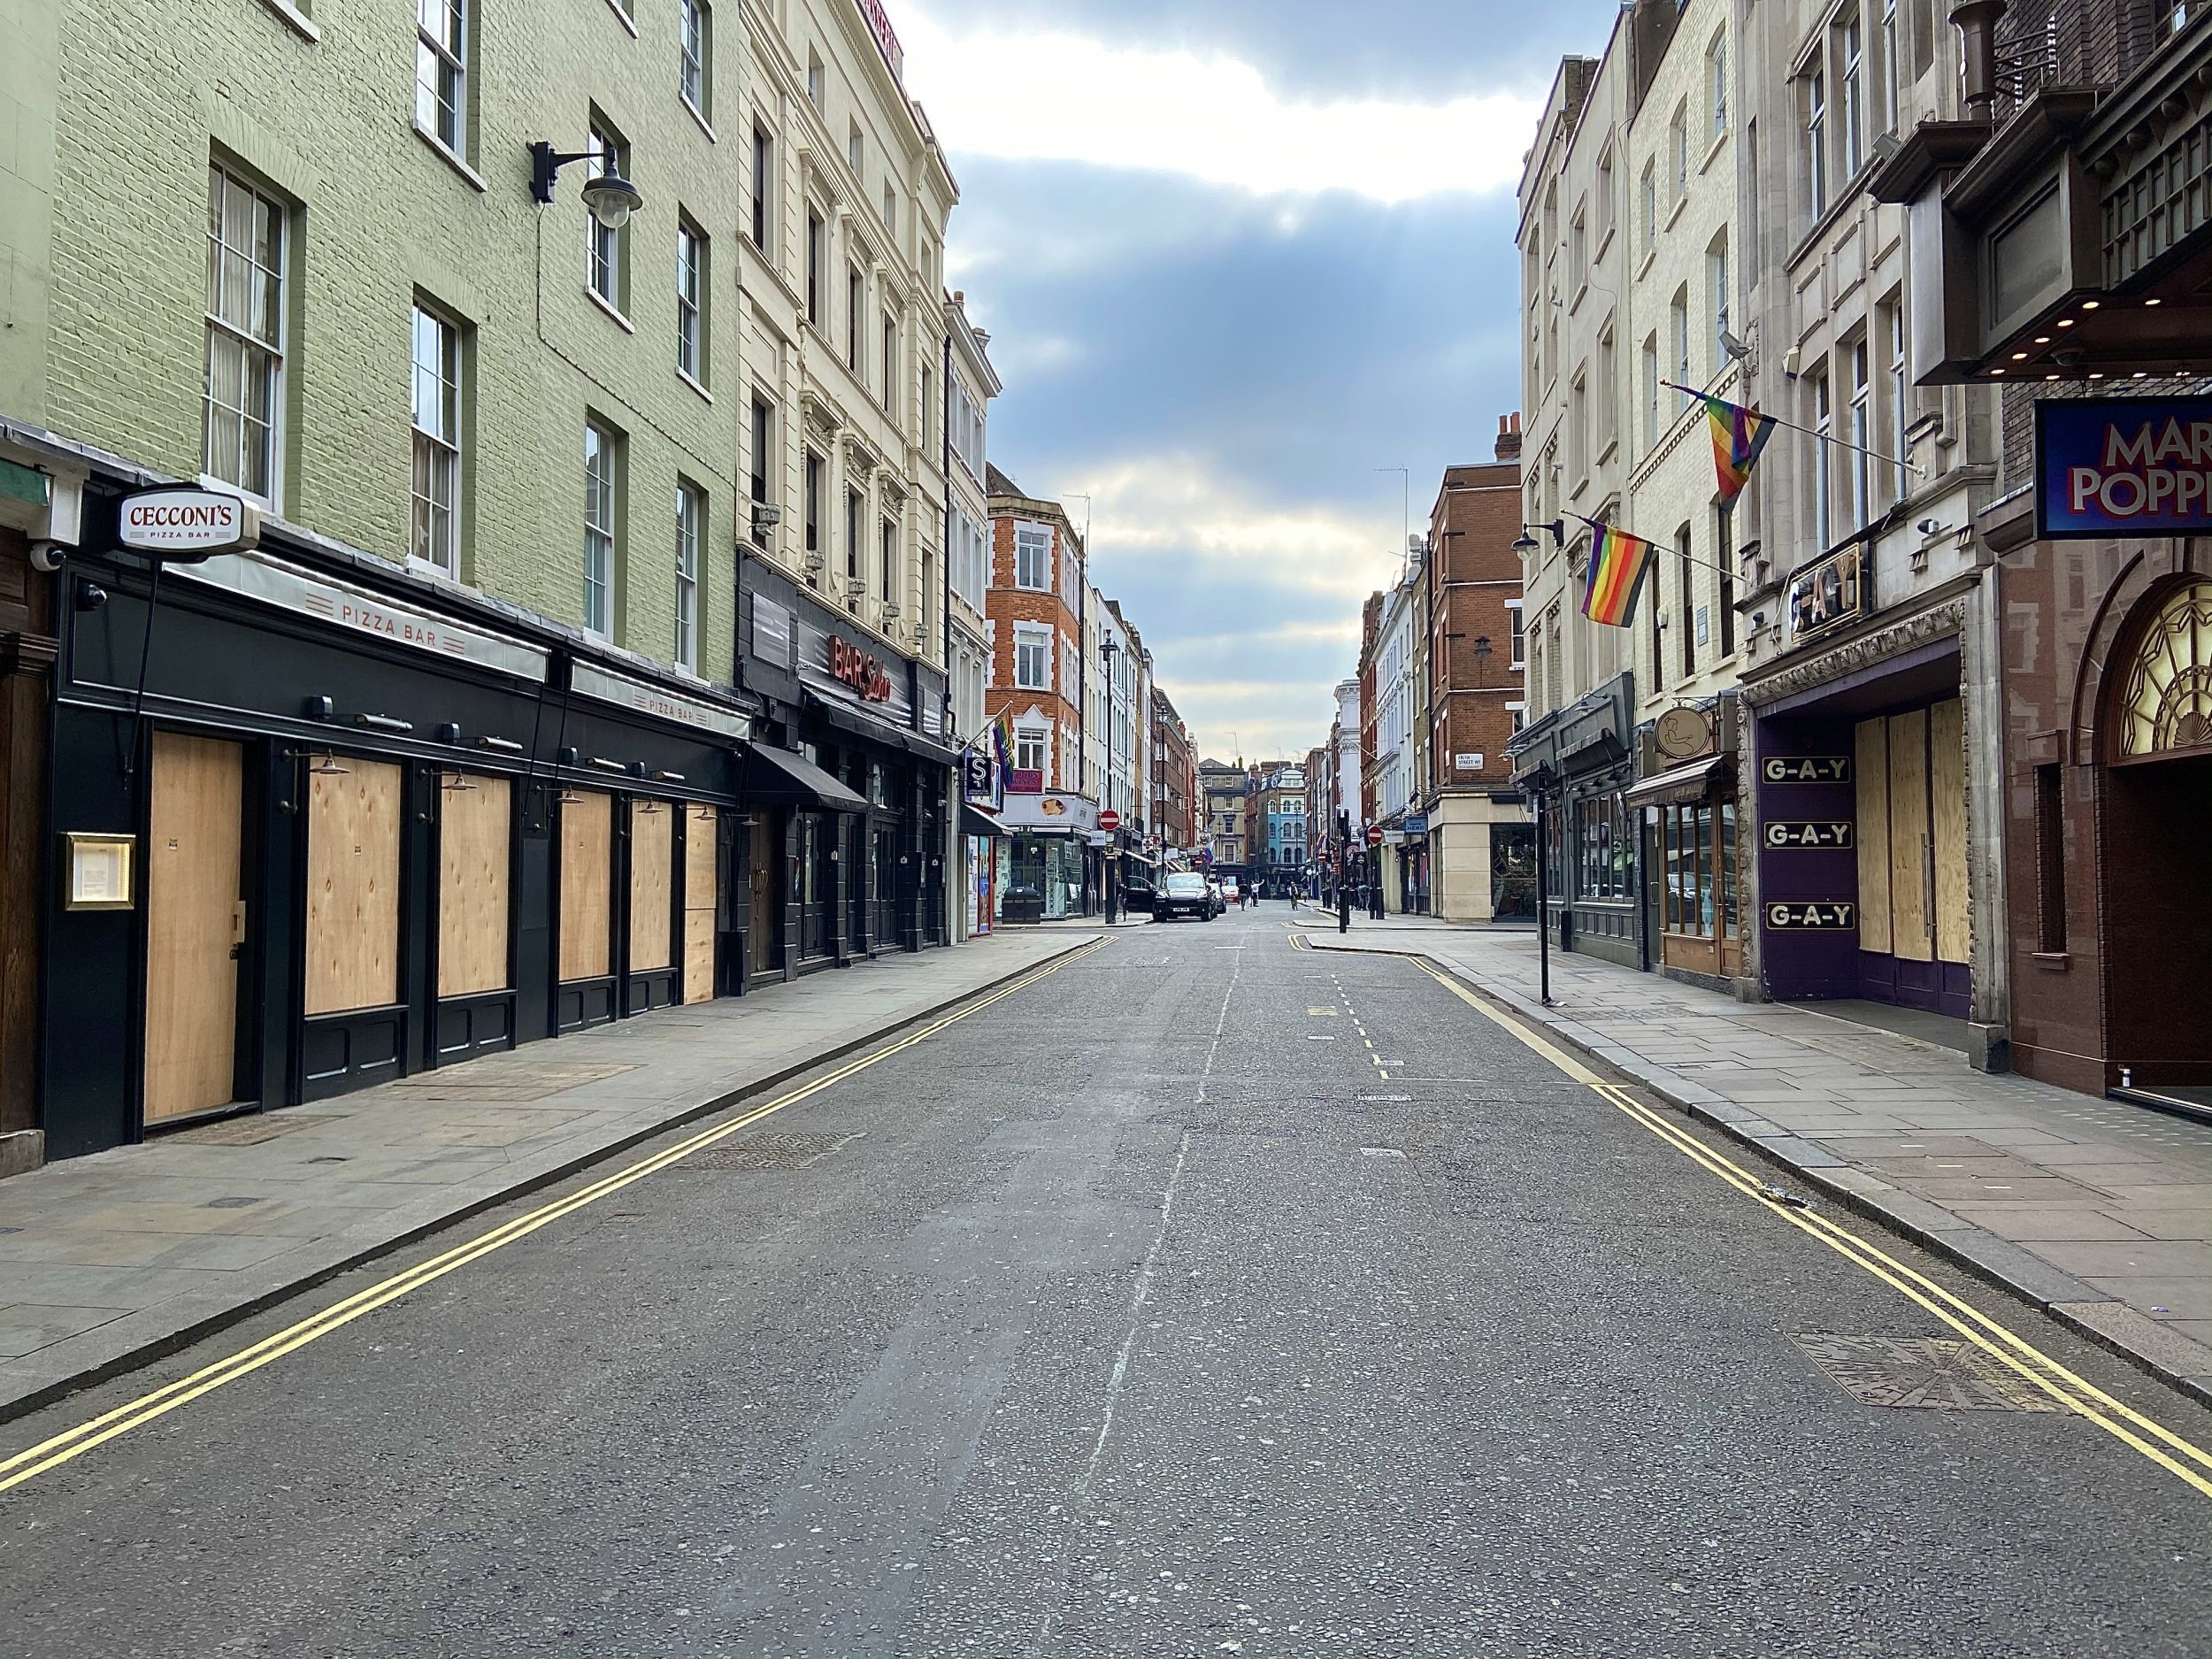 Large parts of London could be pedestrianised to help pubs and bars survive